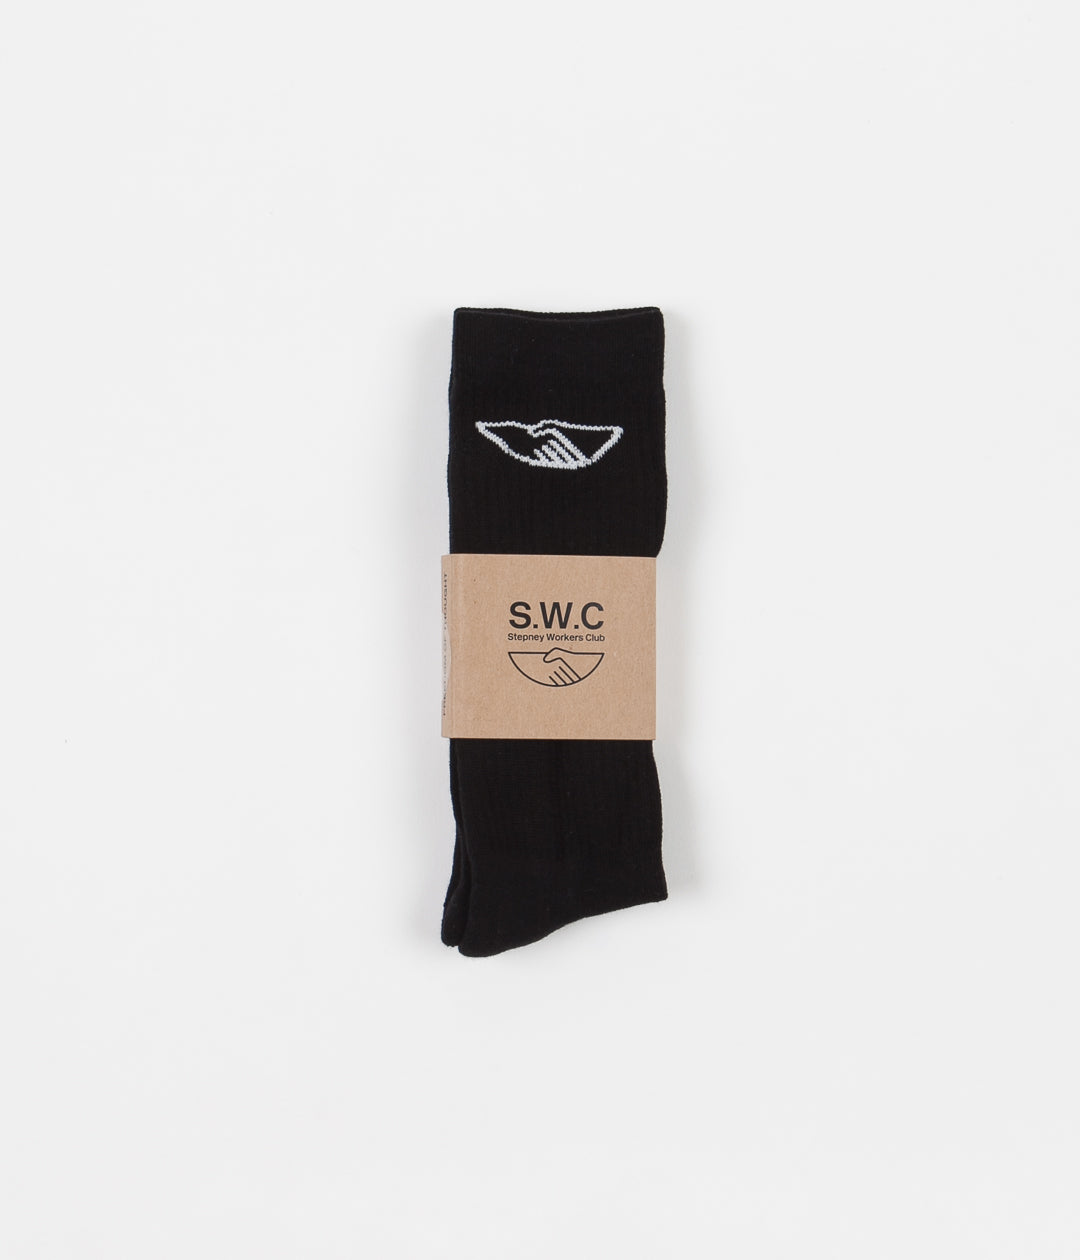 Stepney Workers Club Handshake Socks - Black